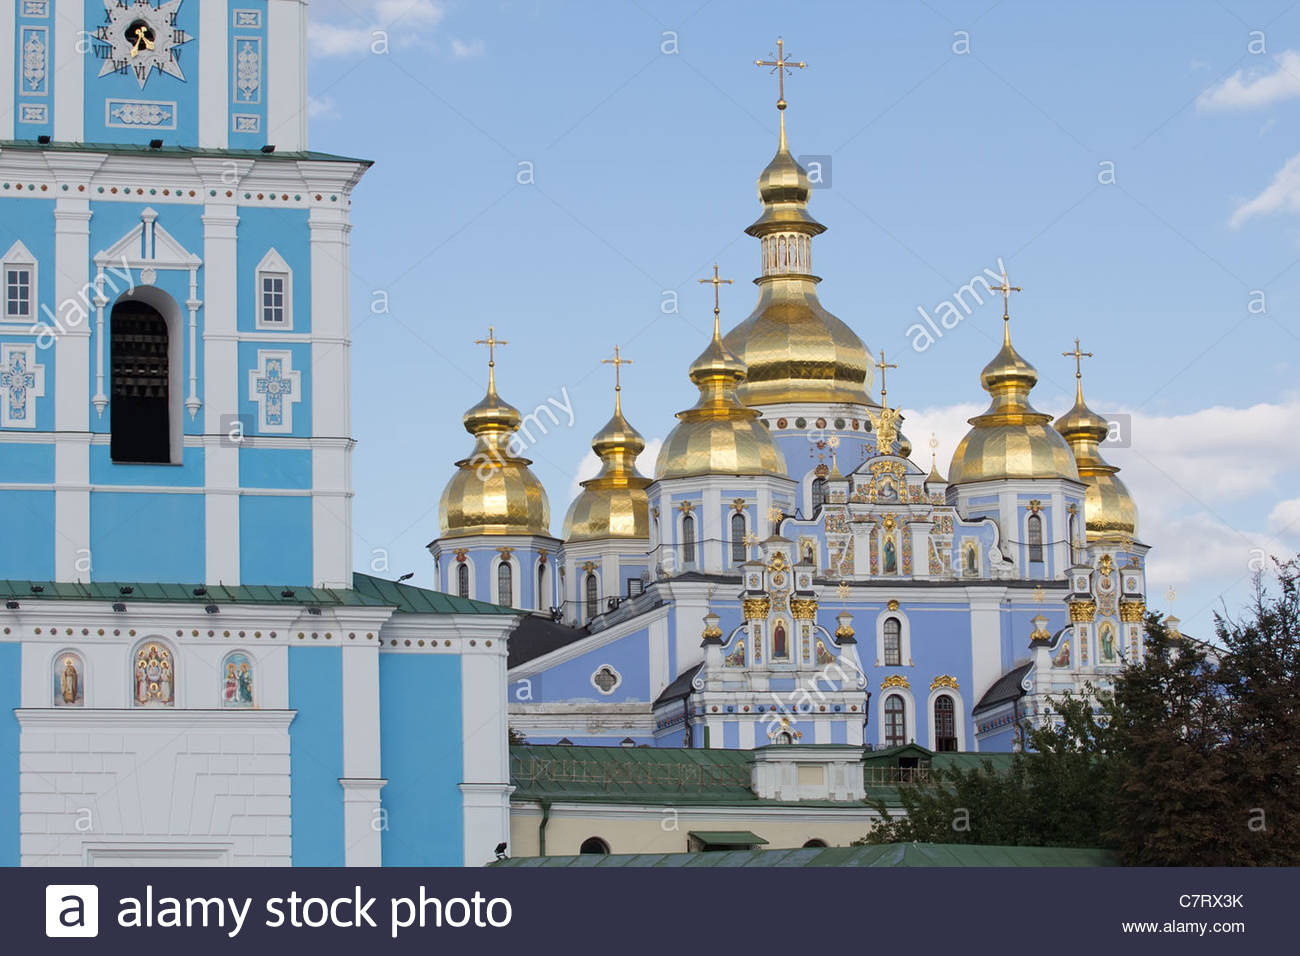 St. Michael cathedral in Kiev, Ukraine - Stock Image